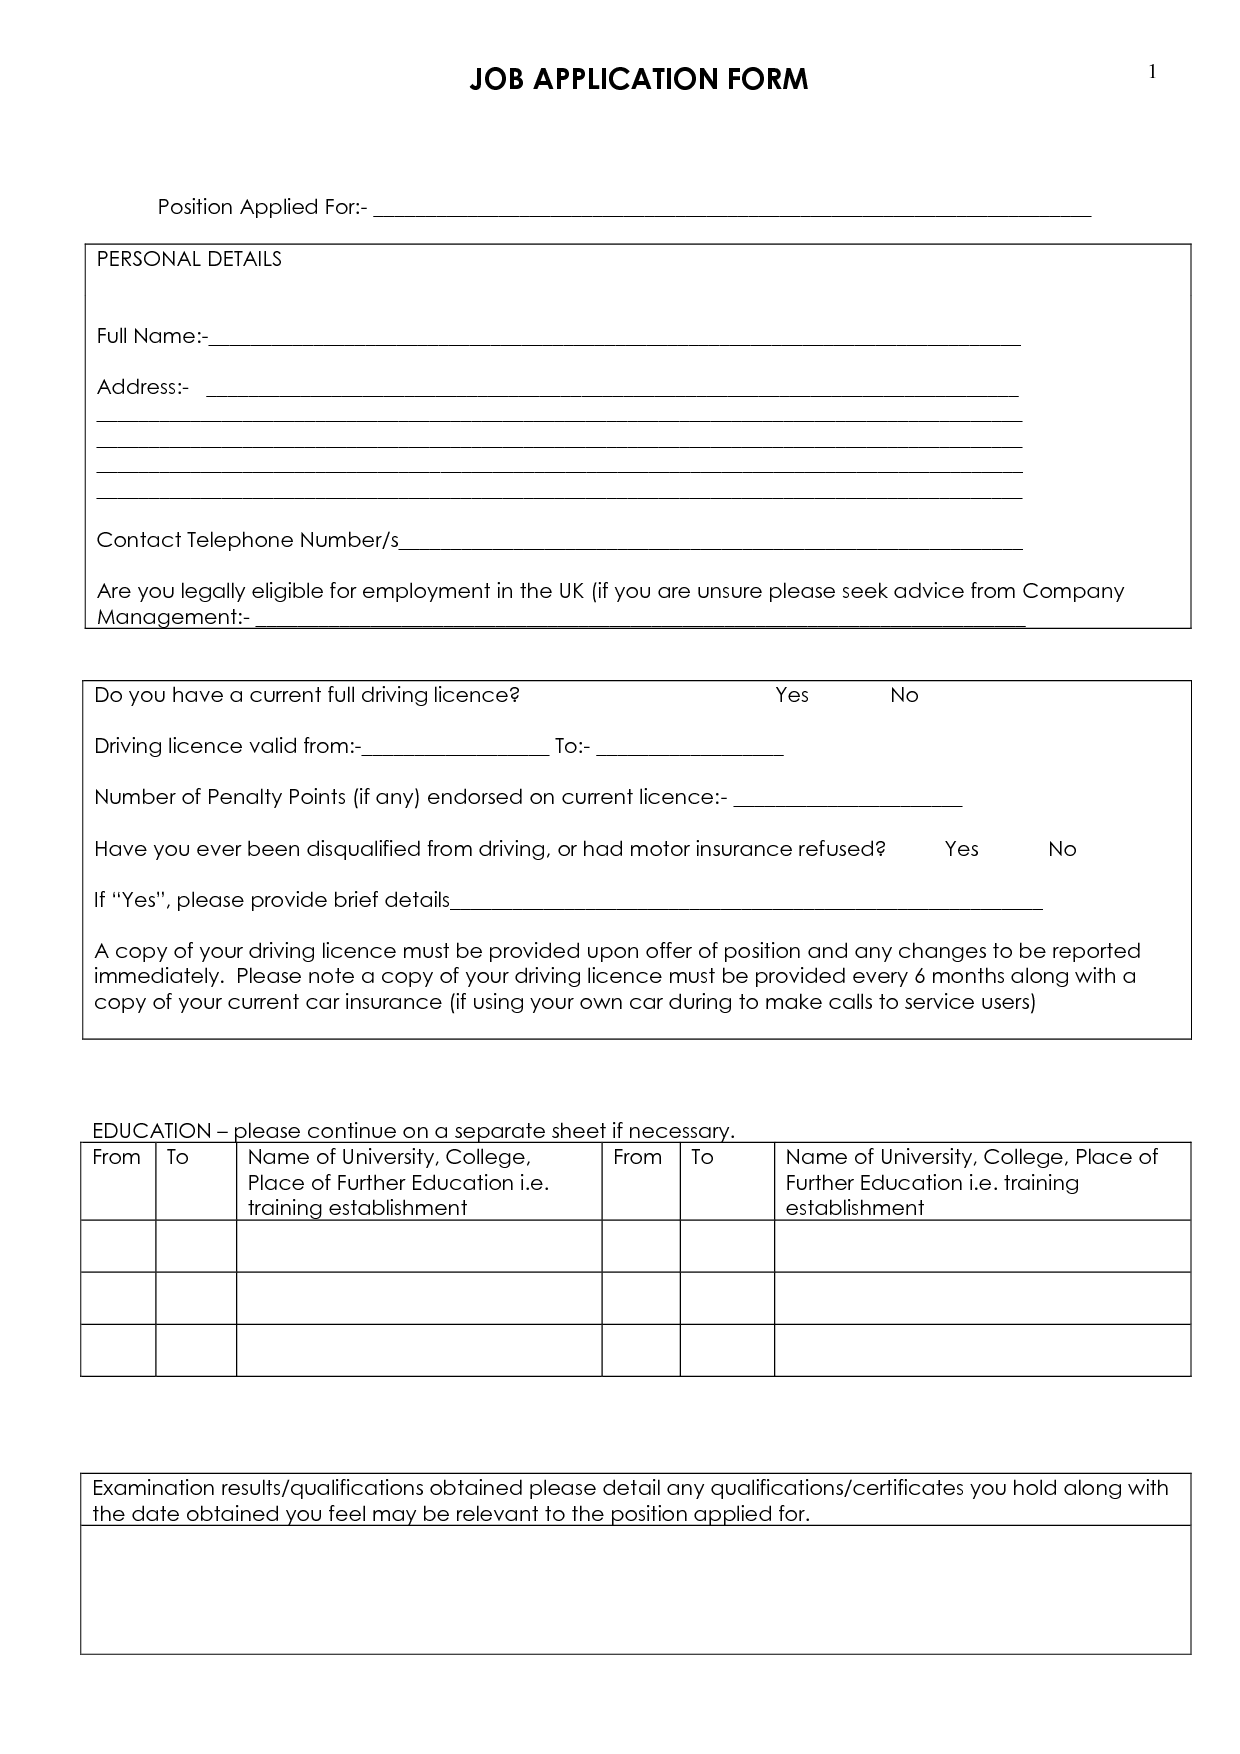 blank job application printable editable blank calendar  job application form to print blank job application forms